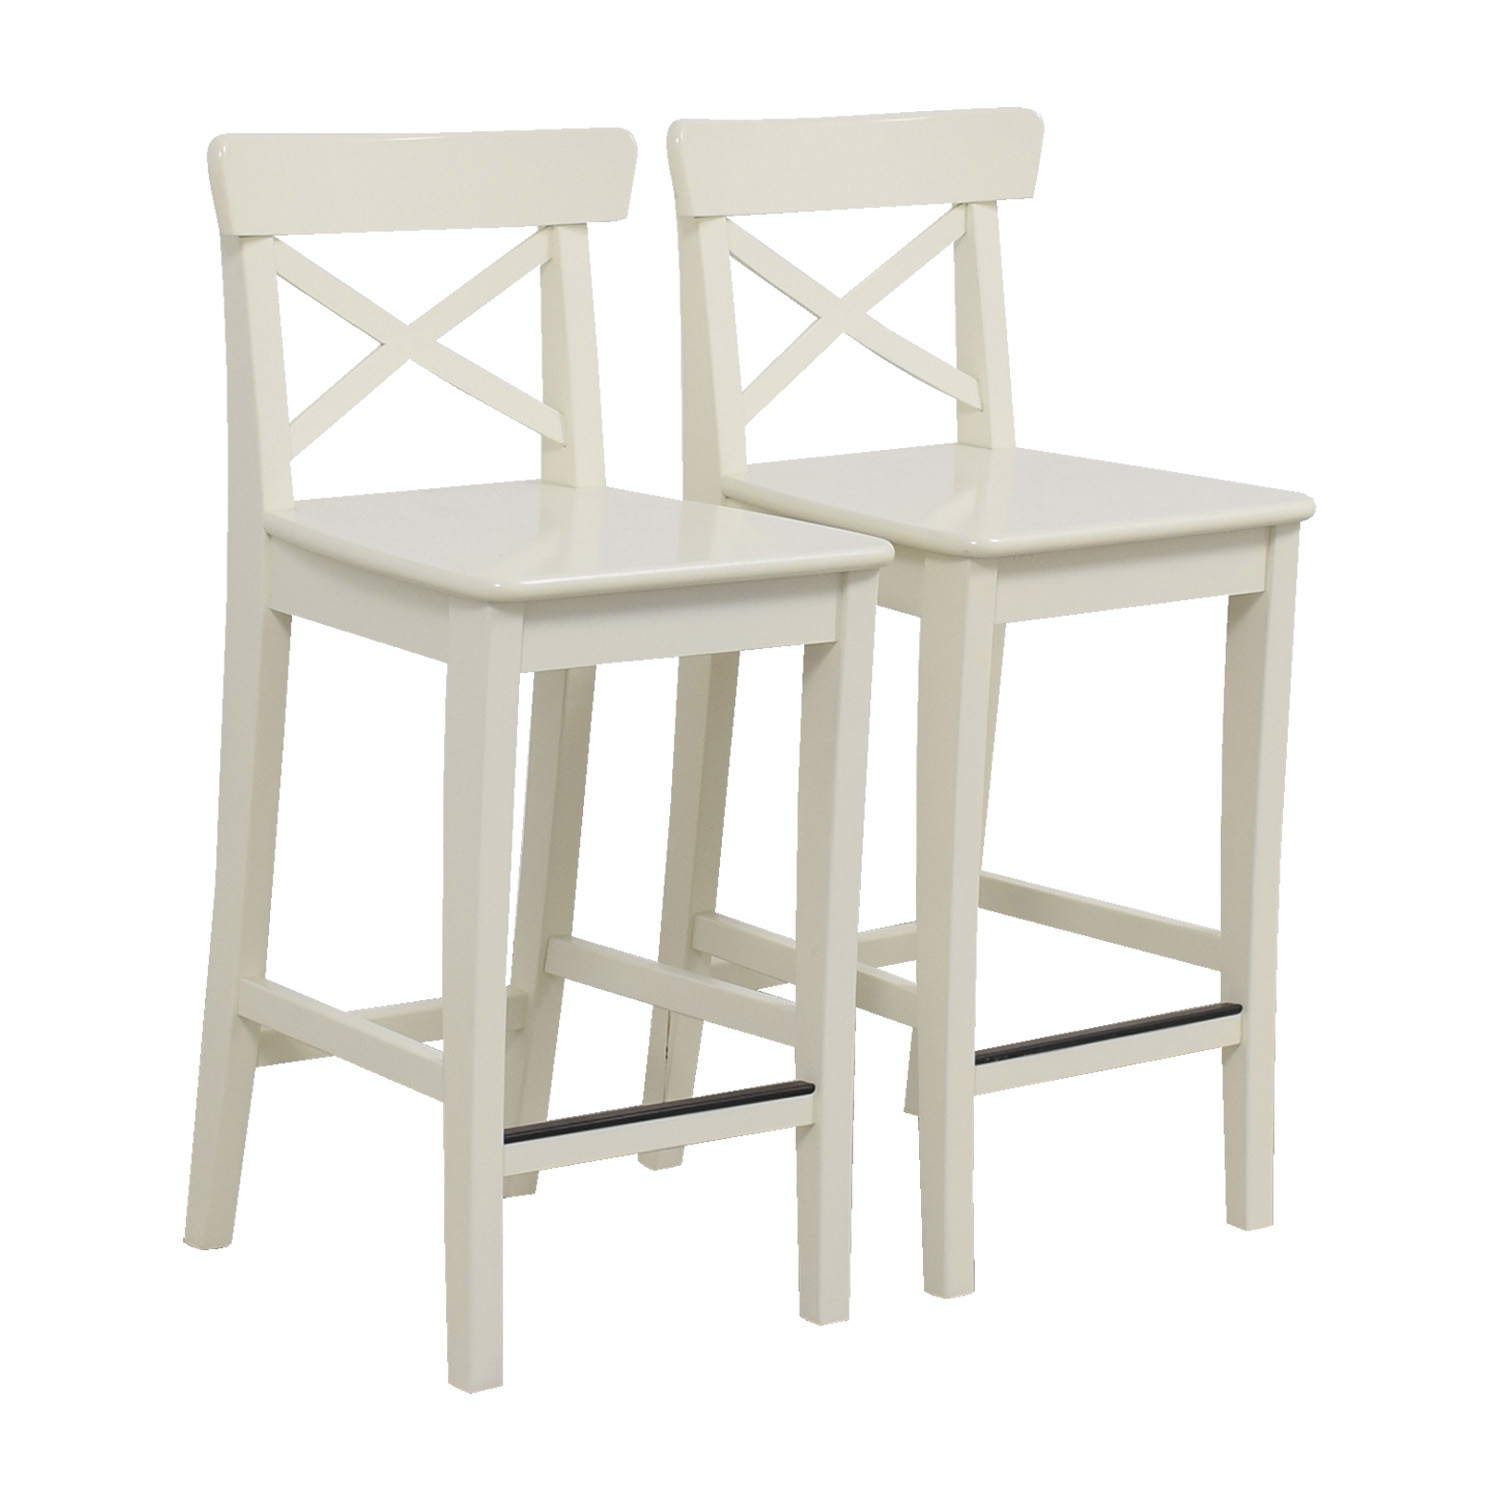 Off ikea white bar stools chairs